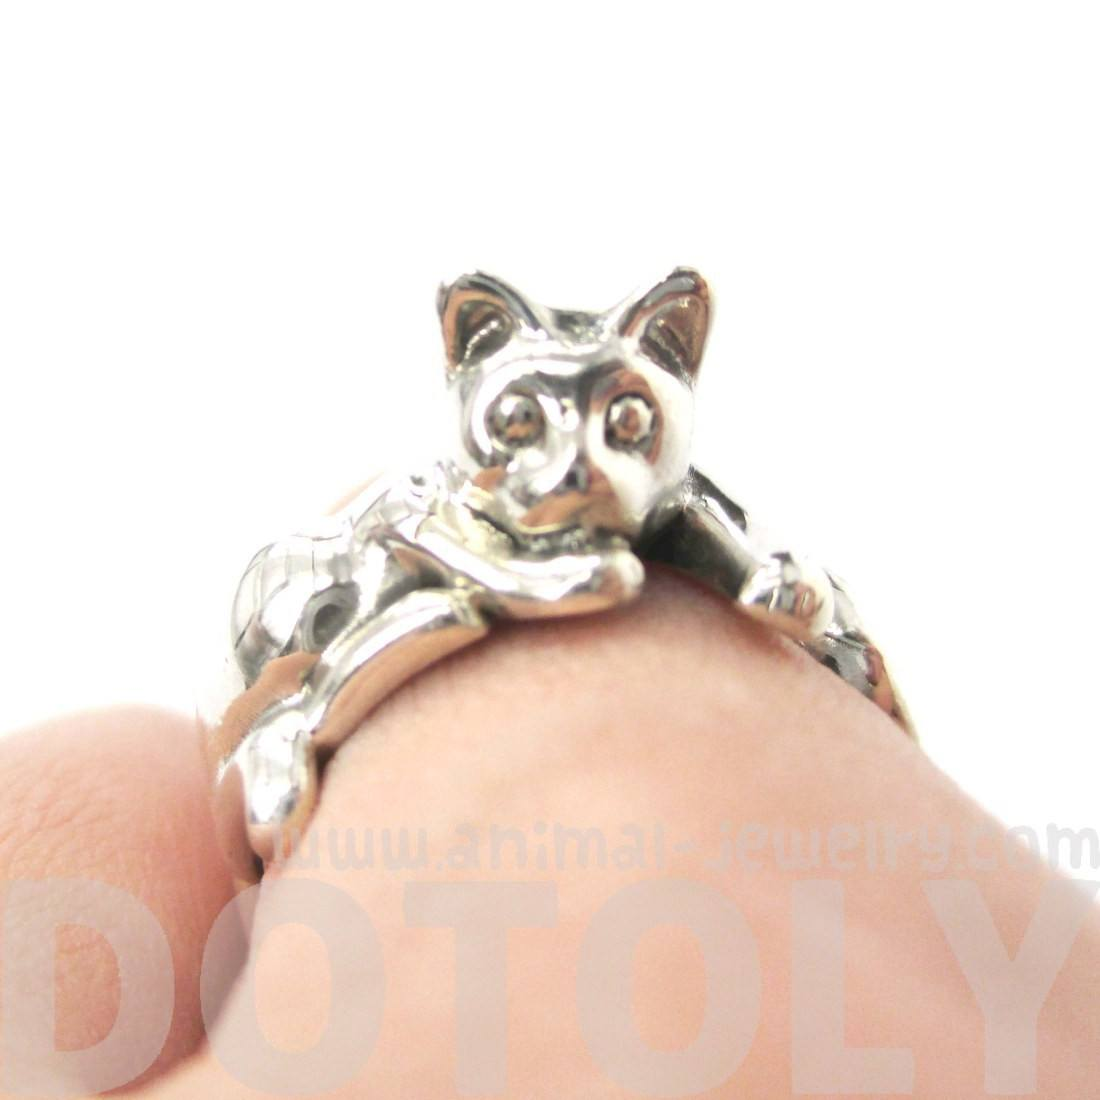 Kitty Cat Shaped Animal Wrap Ring in 925 Sterling Silver